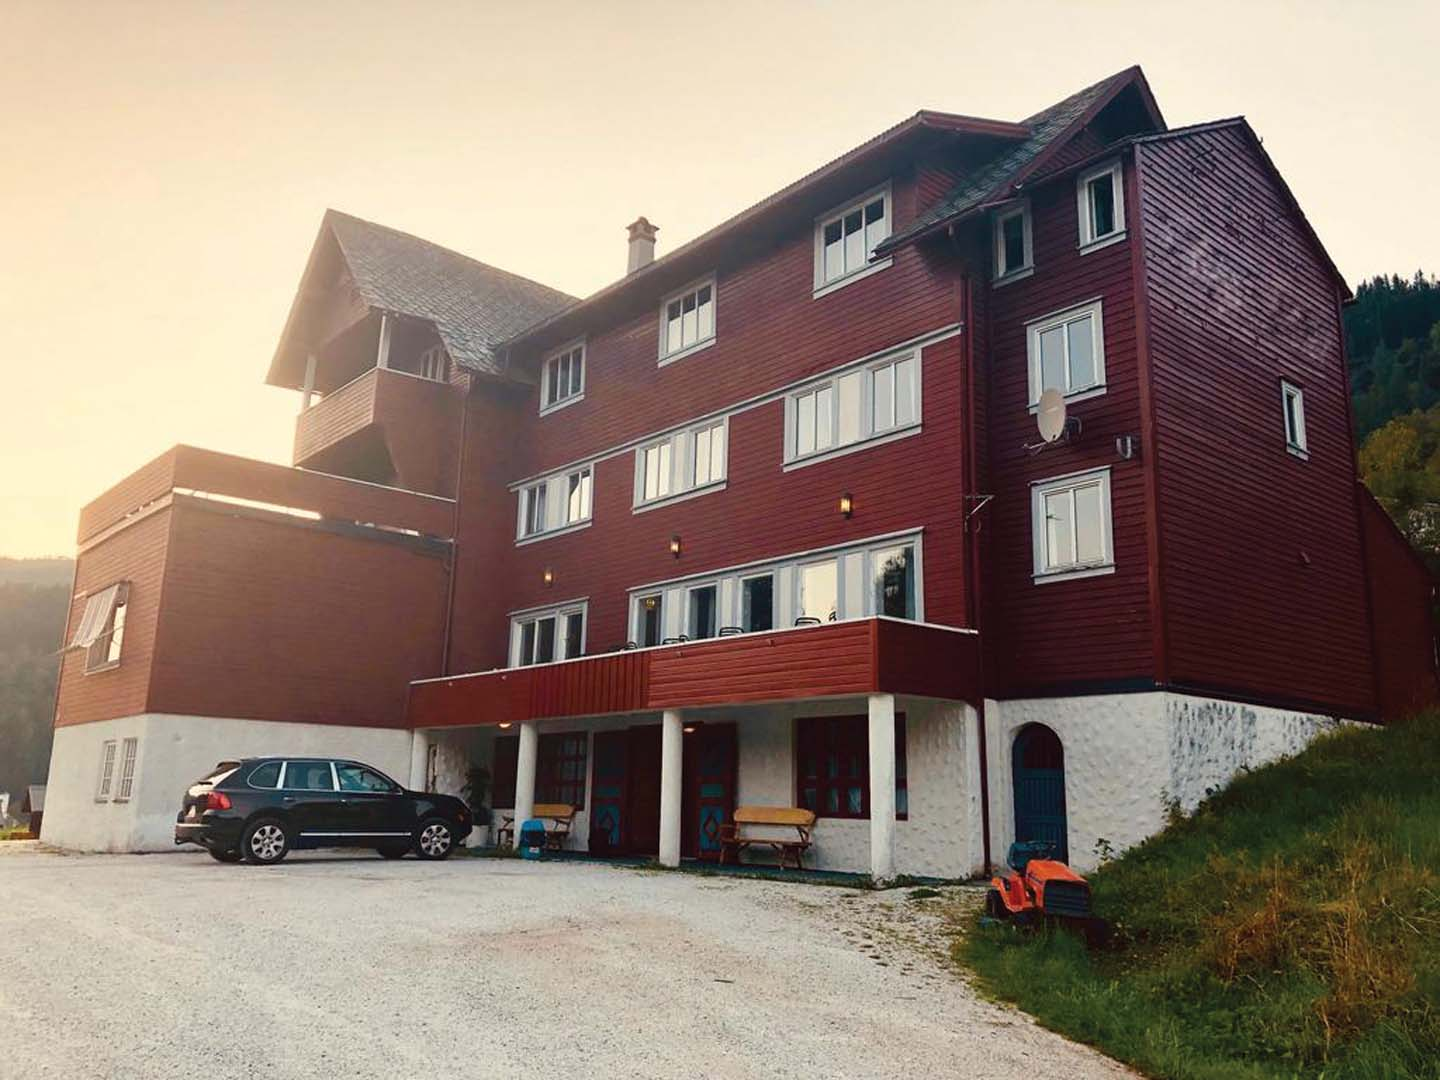 Voss Fjell Hotel